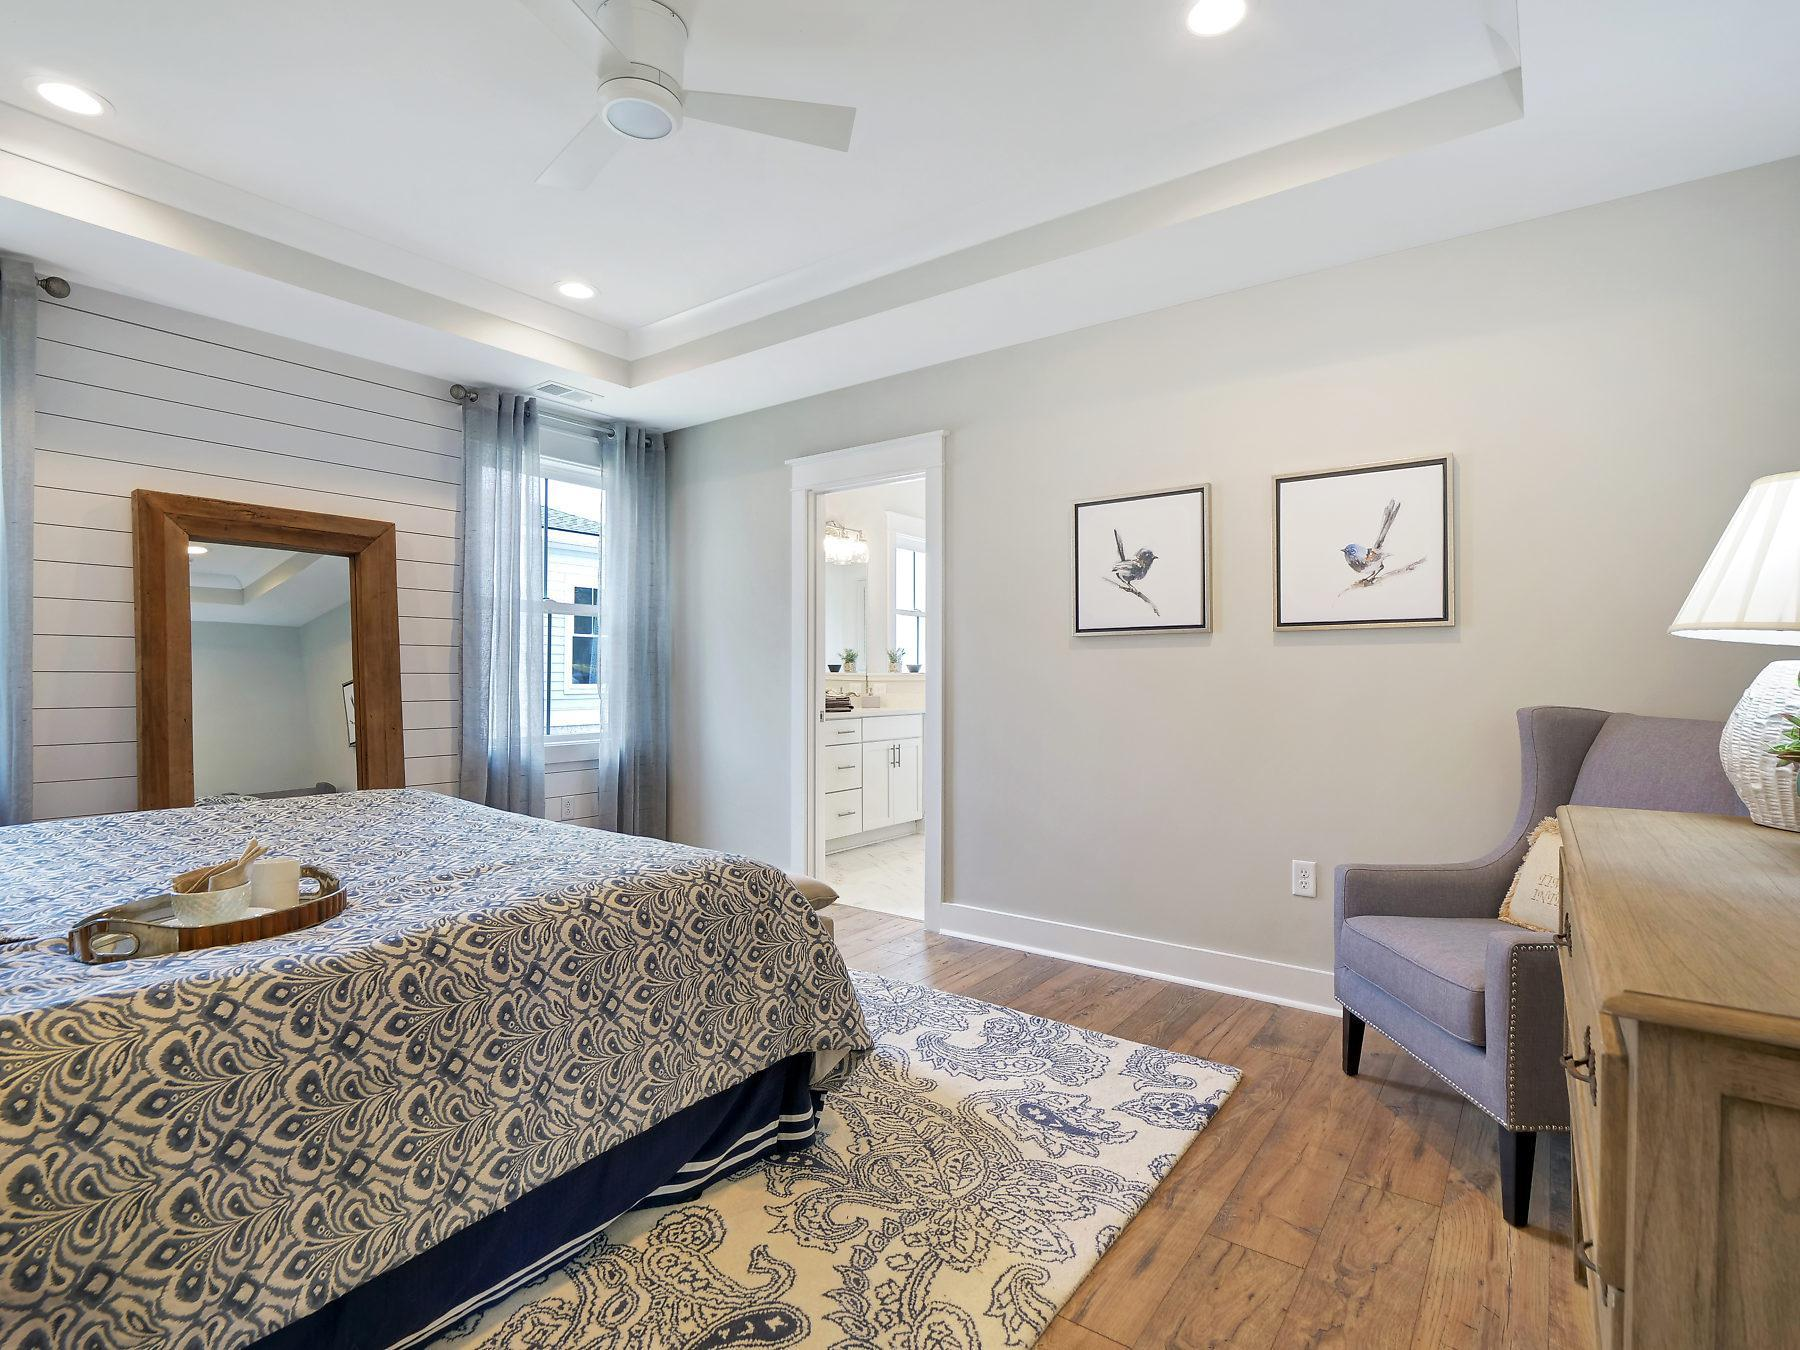 Bedroom featured in The Ashley River II By Village Park Homes in Hilton Head, SC